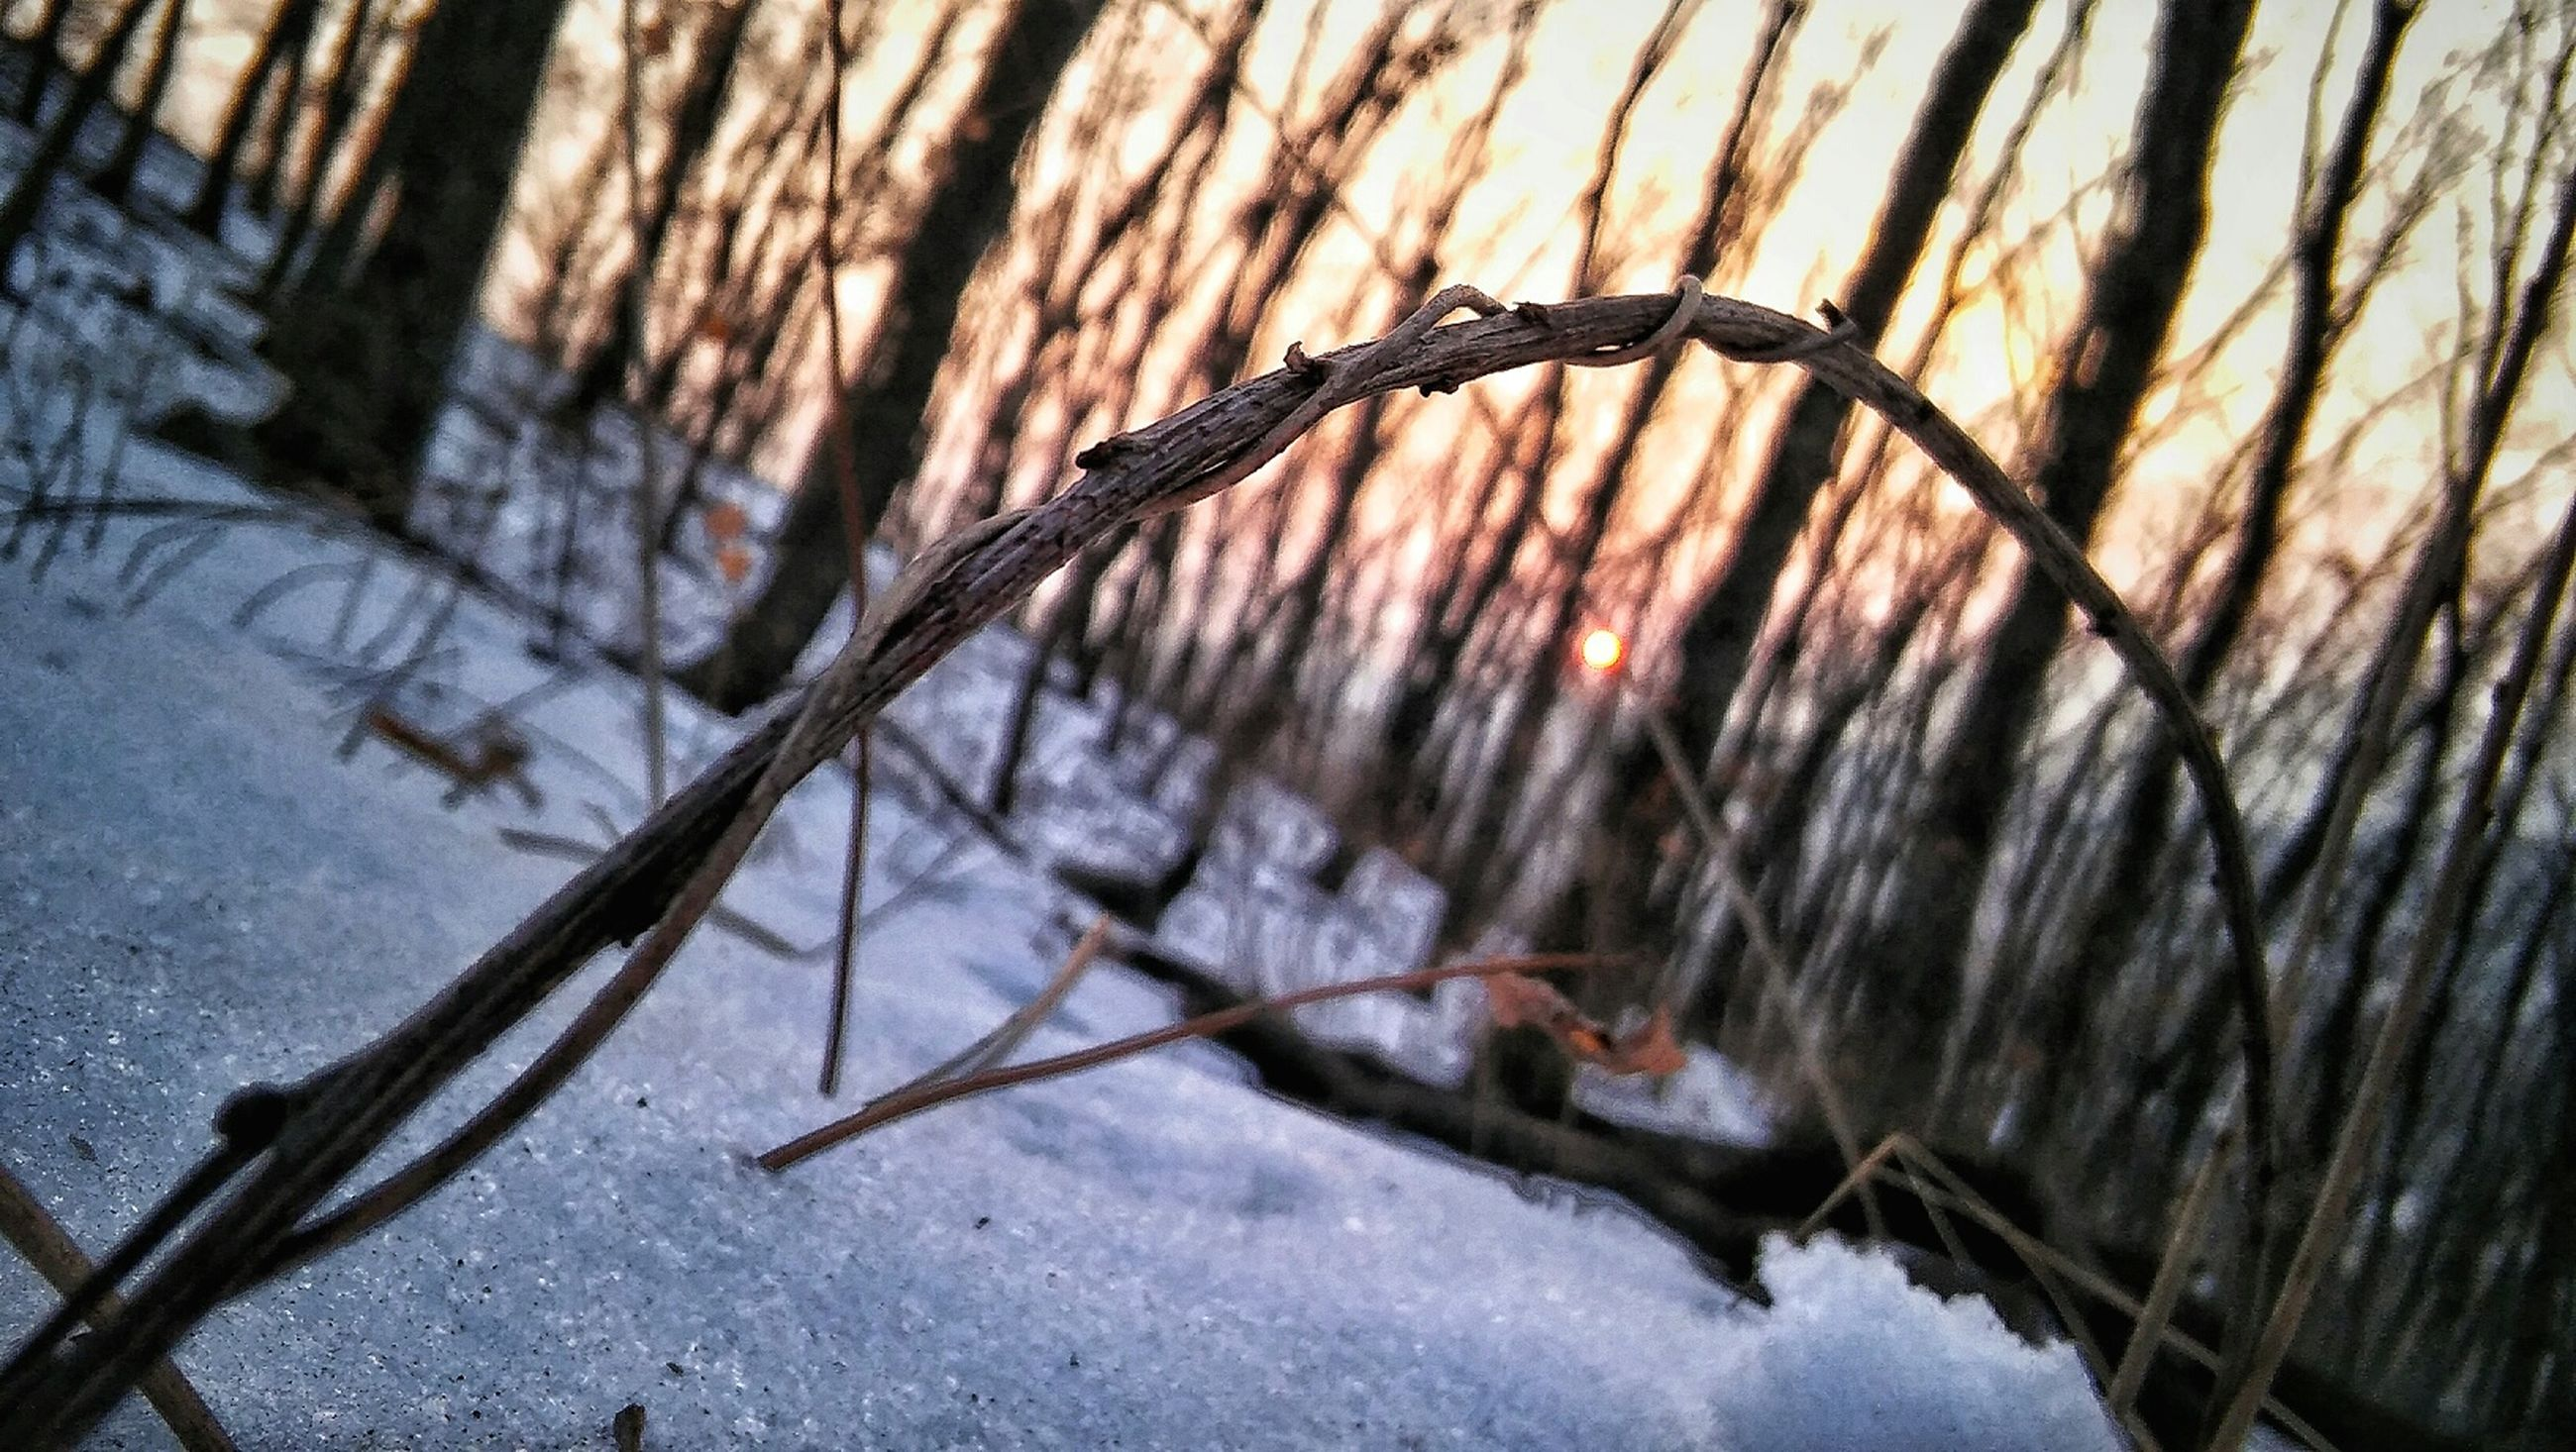 branch, nature, tree trunk, close-up, dry, season, water, winter, fence, focus on foreground, tree, leaf, outdoors, wood - material, day, no people, tranquility, plant, twig, cold temperature